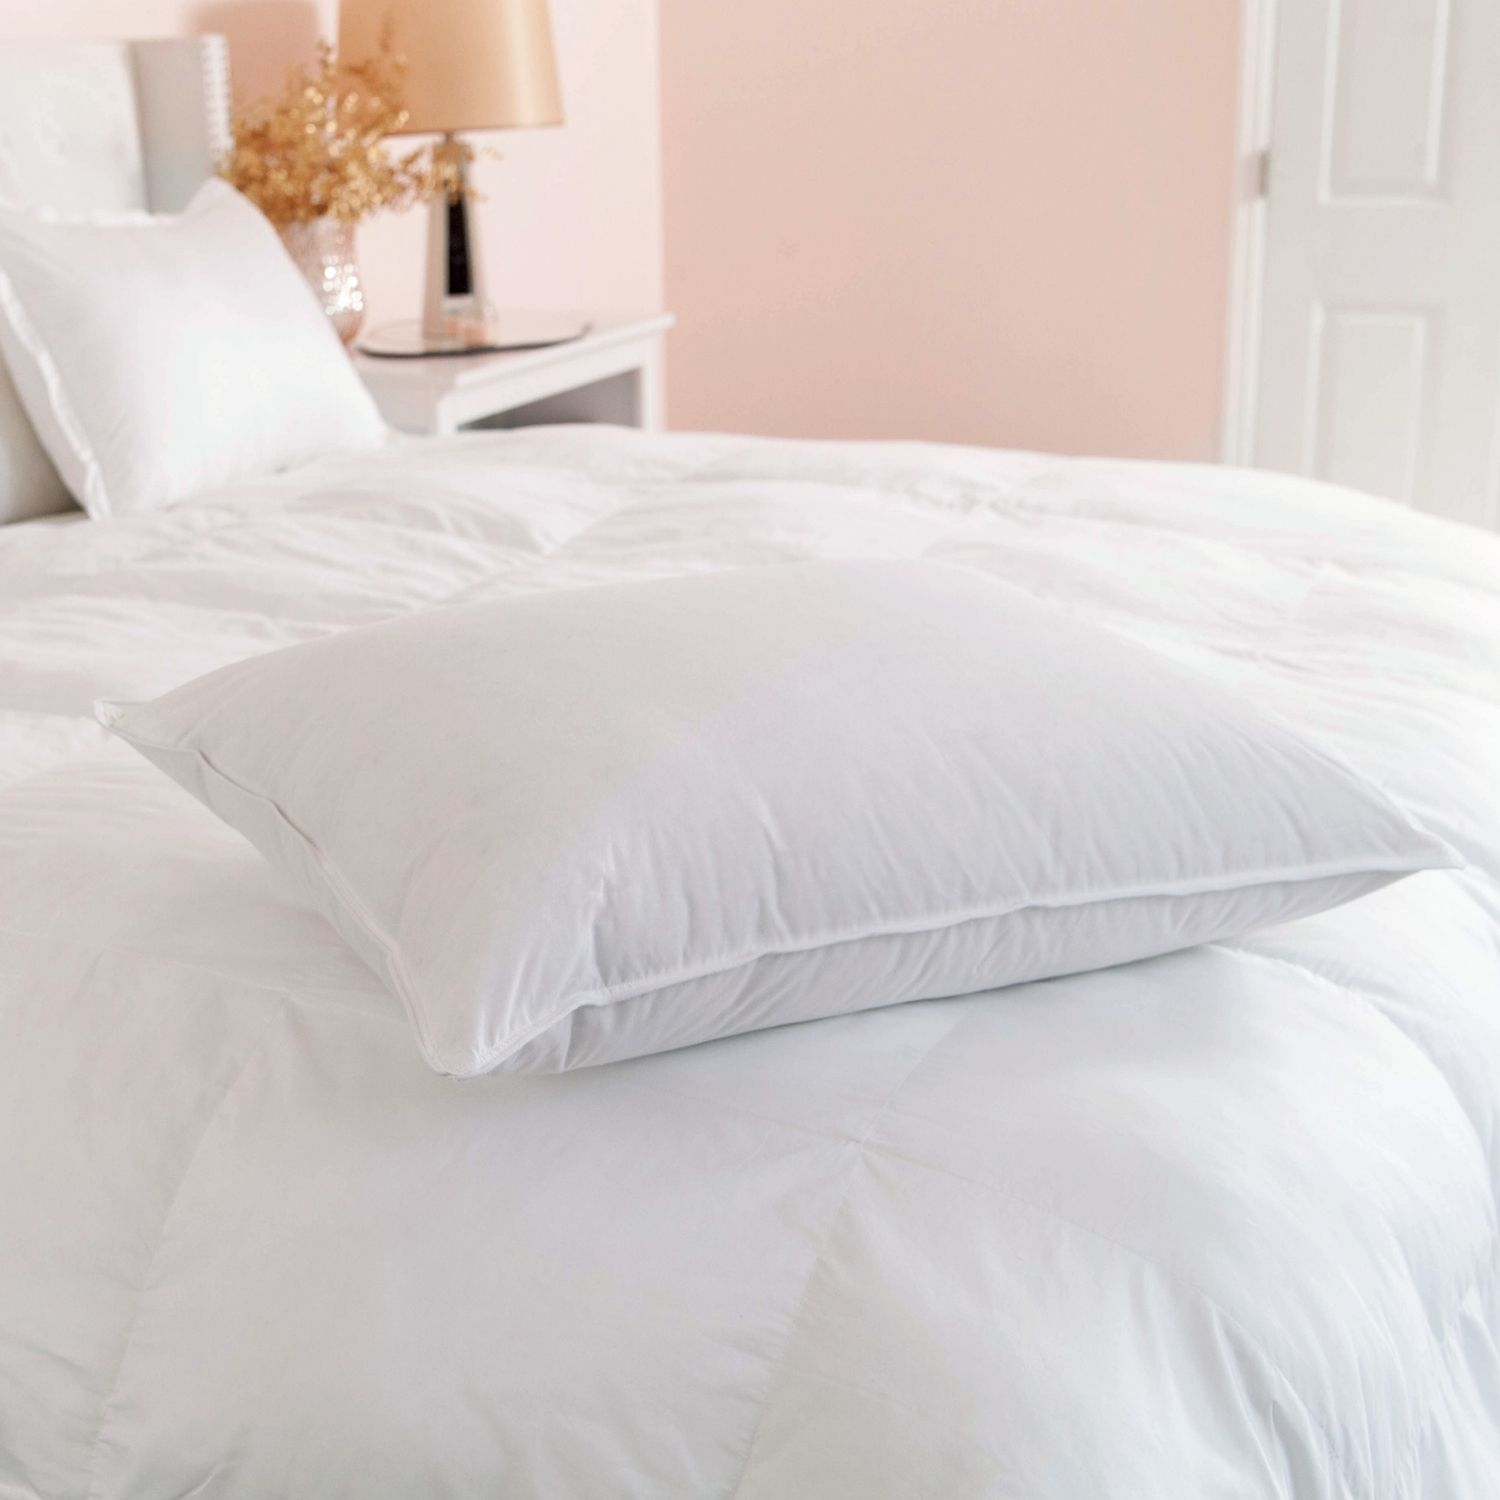 full comfortable comforter duvet reversible page com silk covers comforters pillows cheap white chinese hardwood sexy lamp at table and bed flooring plain with skirt sham dark silver alternative down vikingwaterford pillow kohls microfiber cotton base